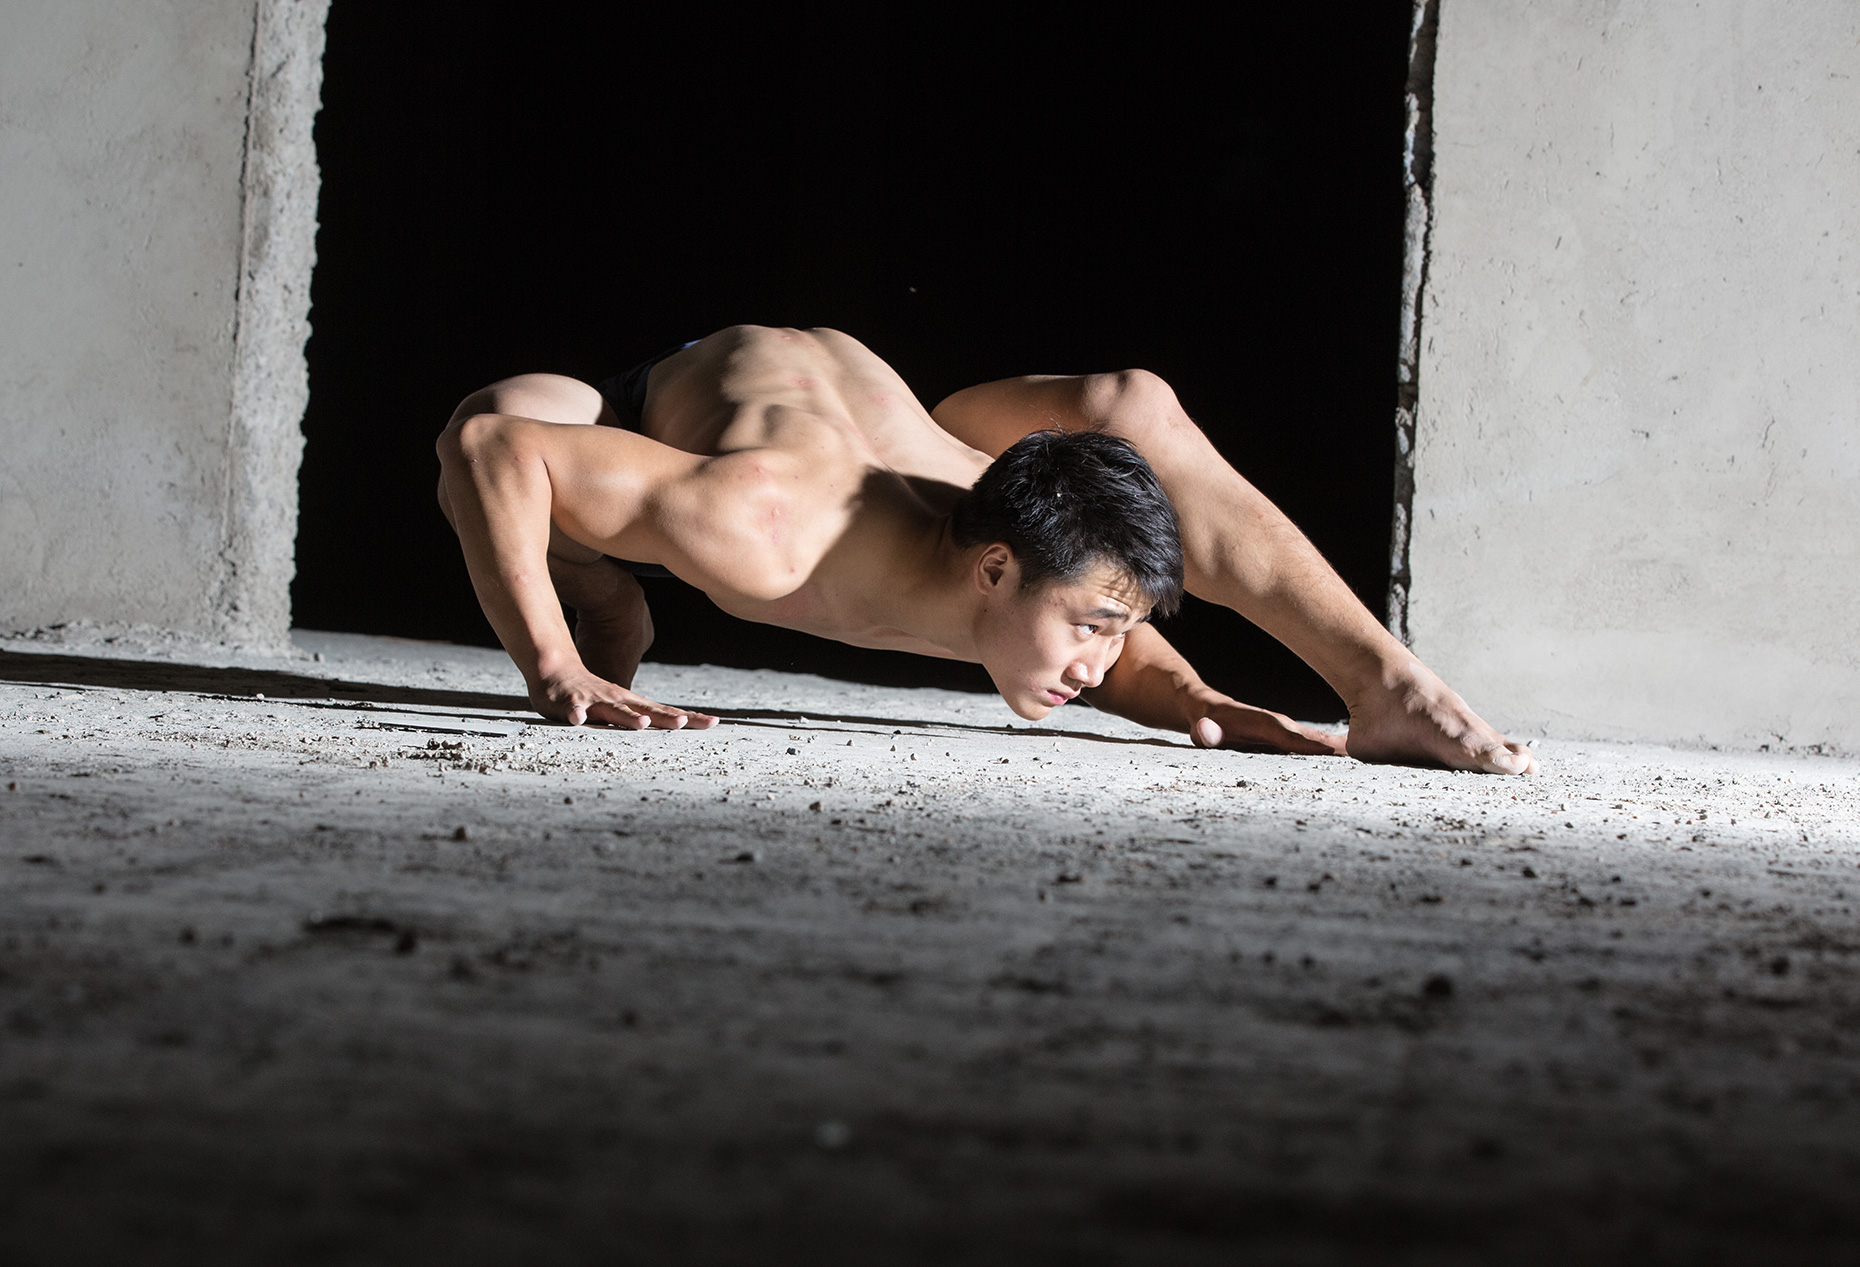 male contortionist performer crawling on the floor of an abandoned concrete structure. strange position. Cirque du Soleil. Fine art, editorial , portrait.